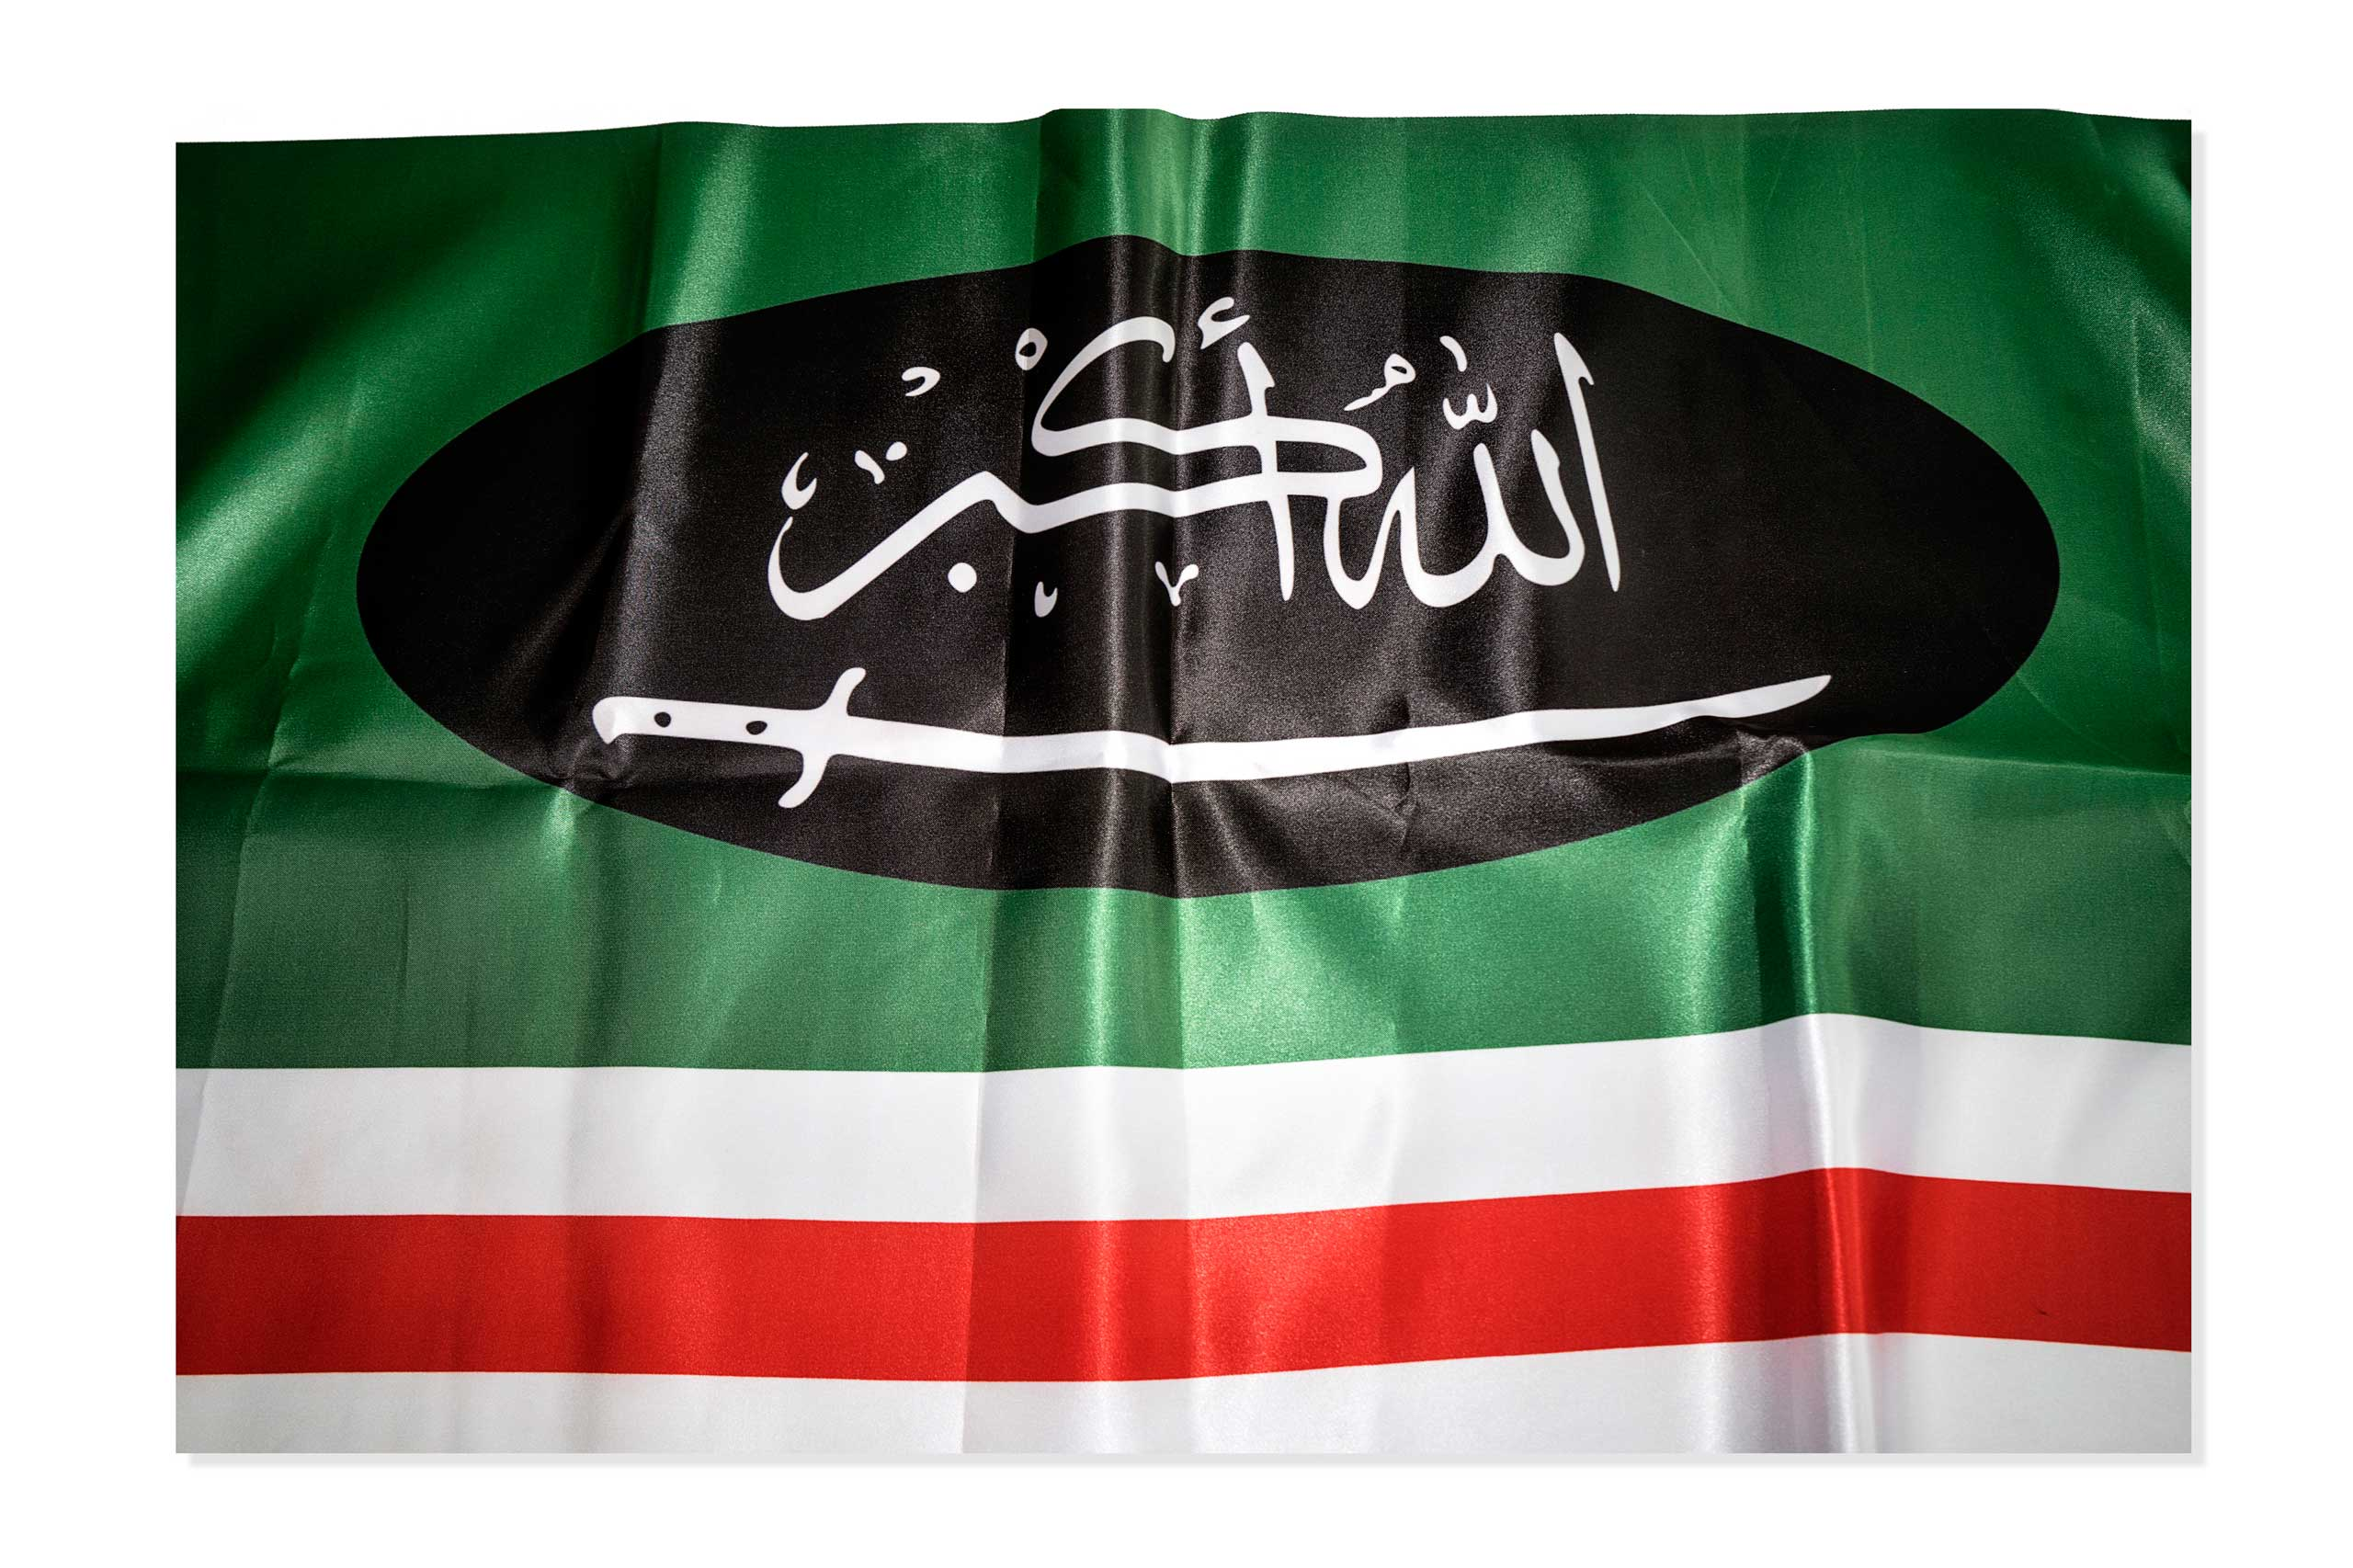 A modified version of the Caucasus Emirate flag used by the unrecognized secessionist government of the Chechen republic of Ichkeria was elected in 1991 but replaced by the Caucasus Emirate in 2007. This item was found in a Islamic clothing and accessory shop in the Bagcilar district of Istanbul, Turkey.